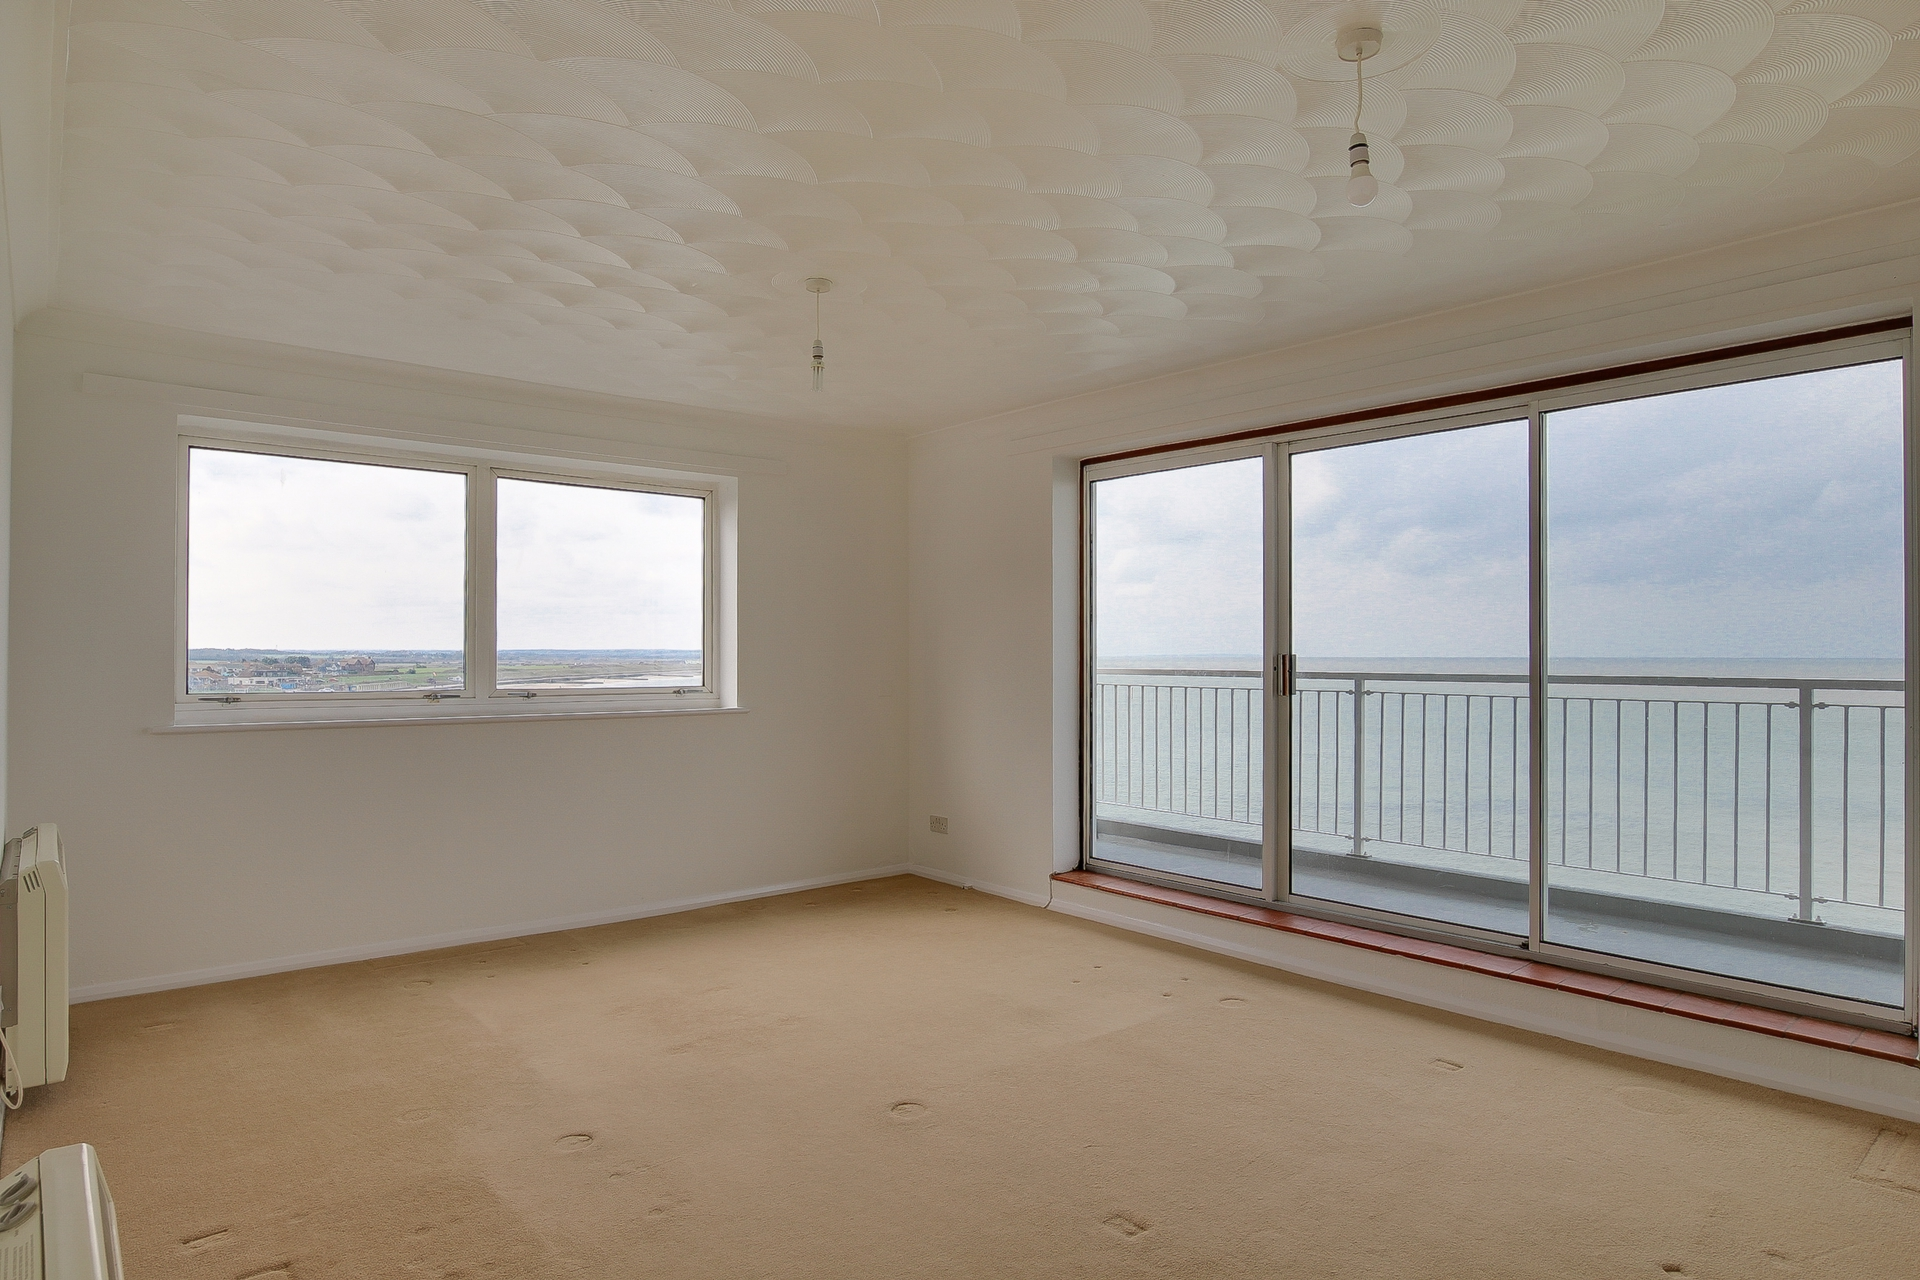 2 bed flat to rent in The Parade, Minnis Bay, CT7 1